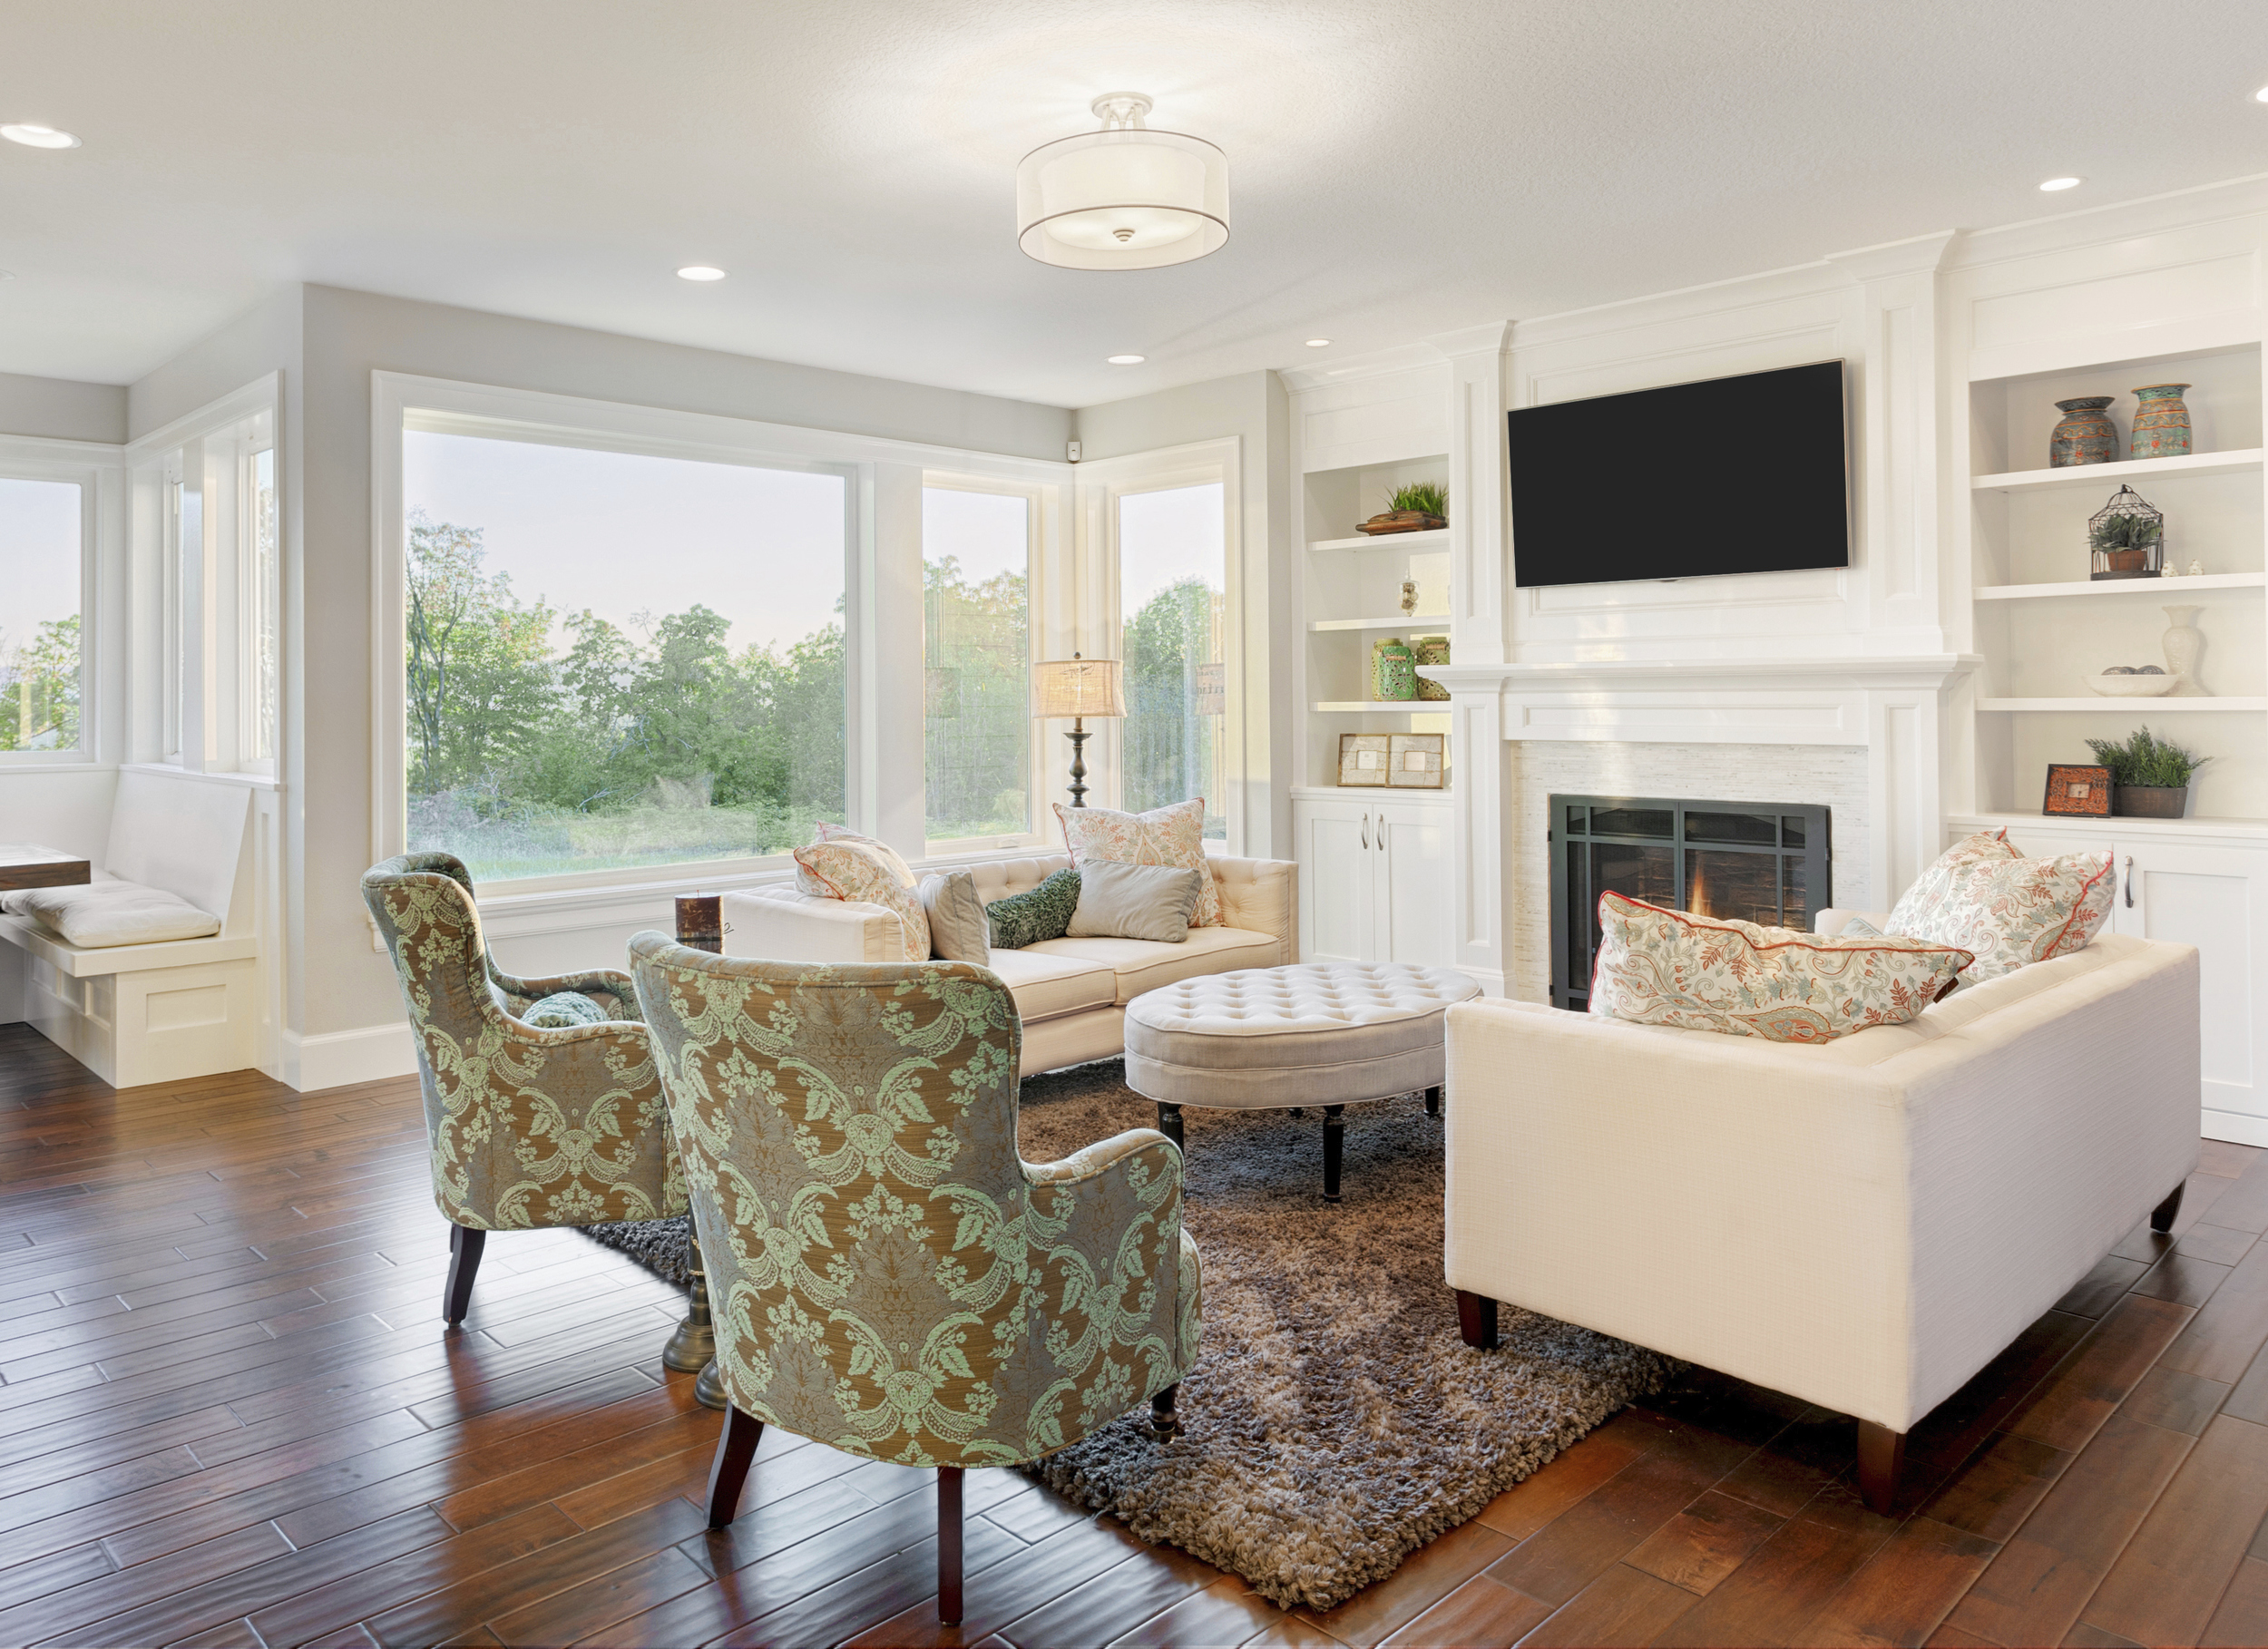 Home Staging Austin Home Staging In Austin, Texas | Spindle Design Co.